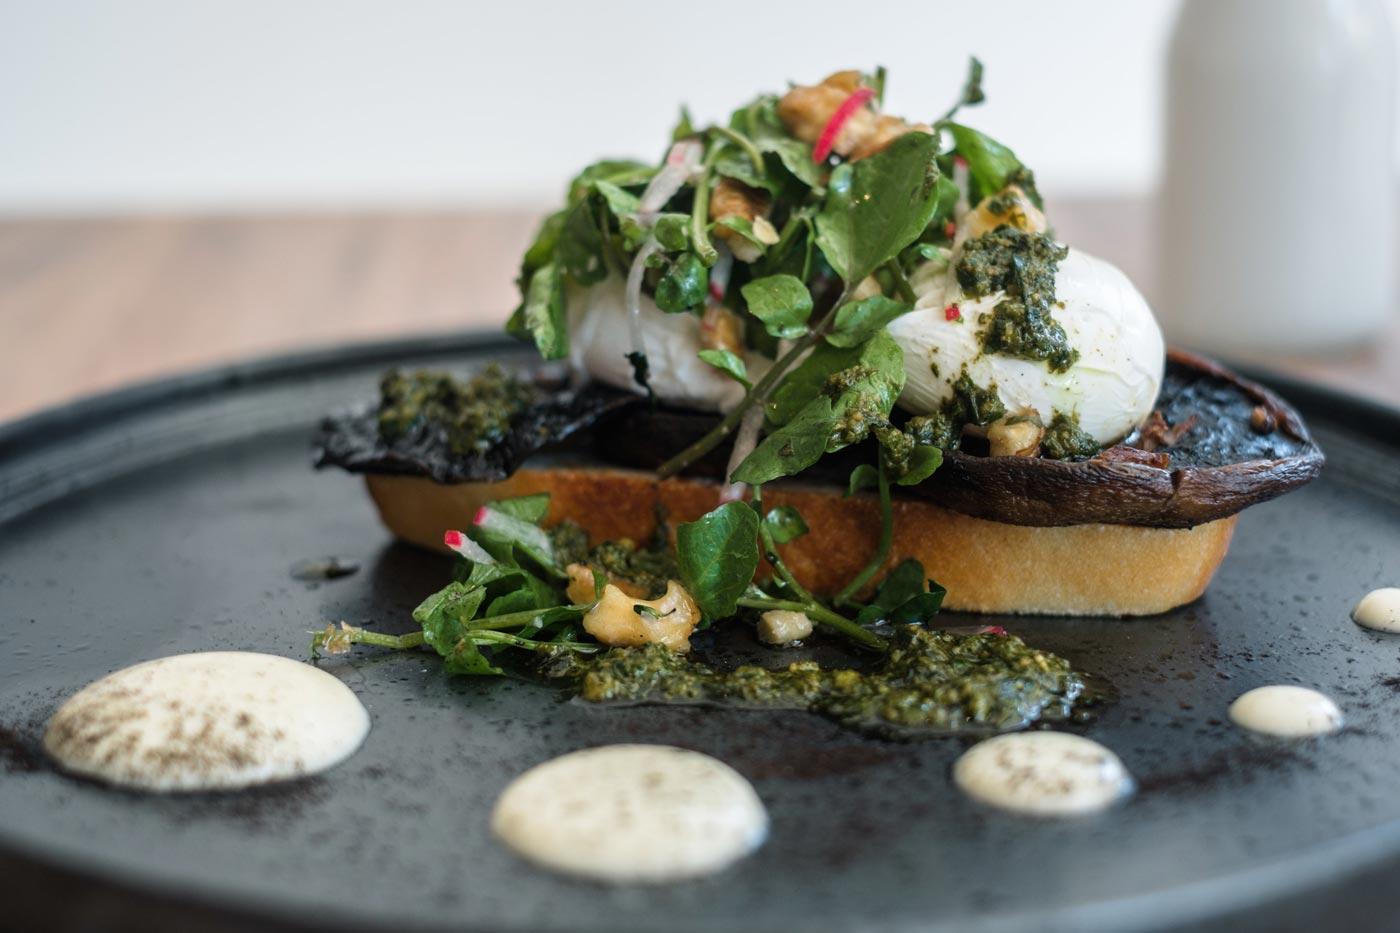 Newcastle cafe Mockingbird serves delicious breakfasts and lunches